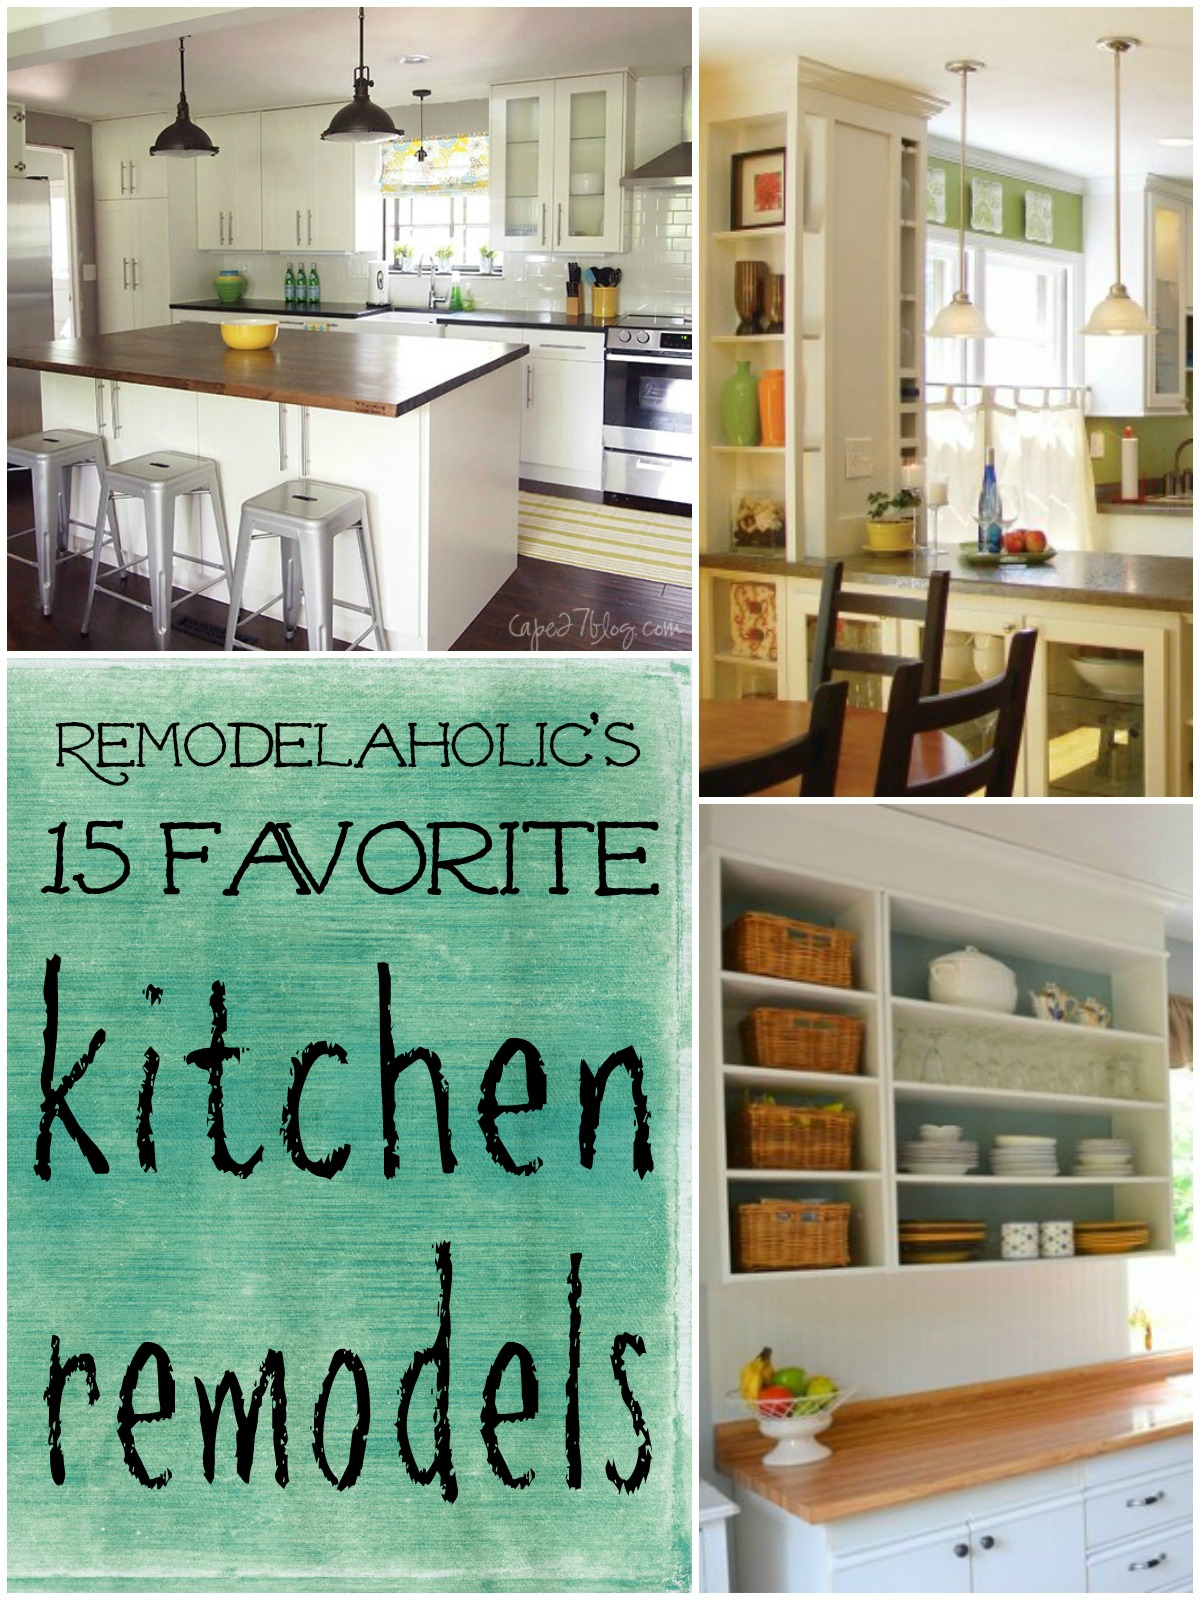 Favorite kitchen remodel ideas remodelaholic - Inspired diy ideas small kitchen ...